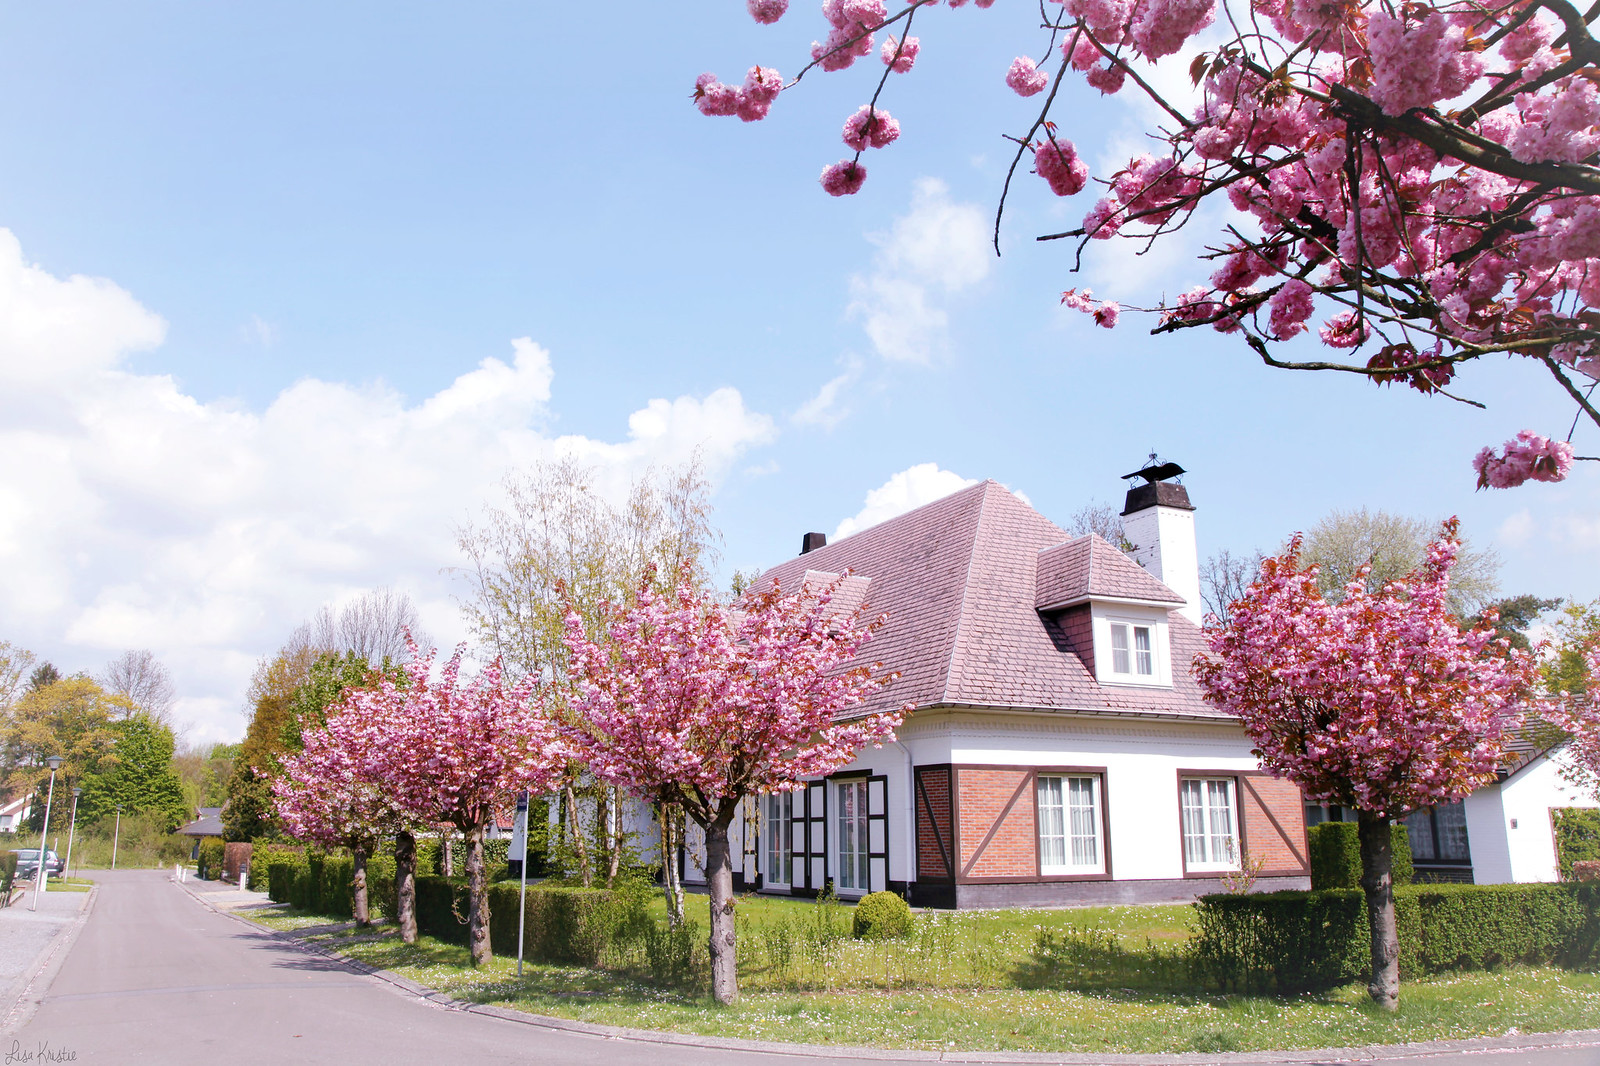 cherry blossom trees april spring neighborhood suburbs sunny weather blue sky street villa house europe belgium pink flowers in bloom